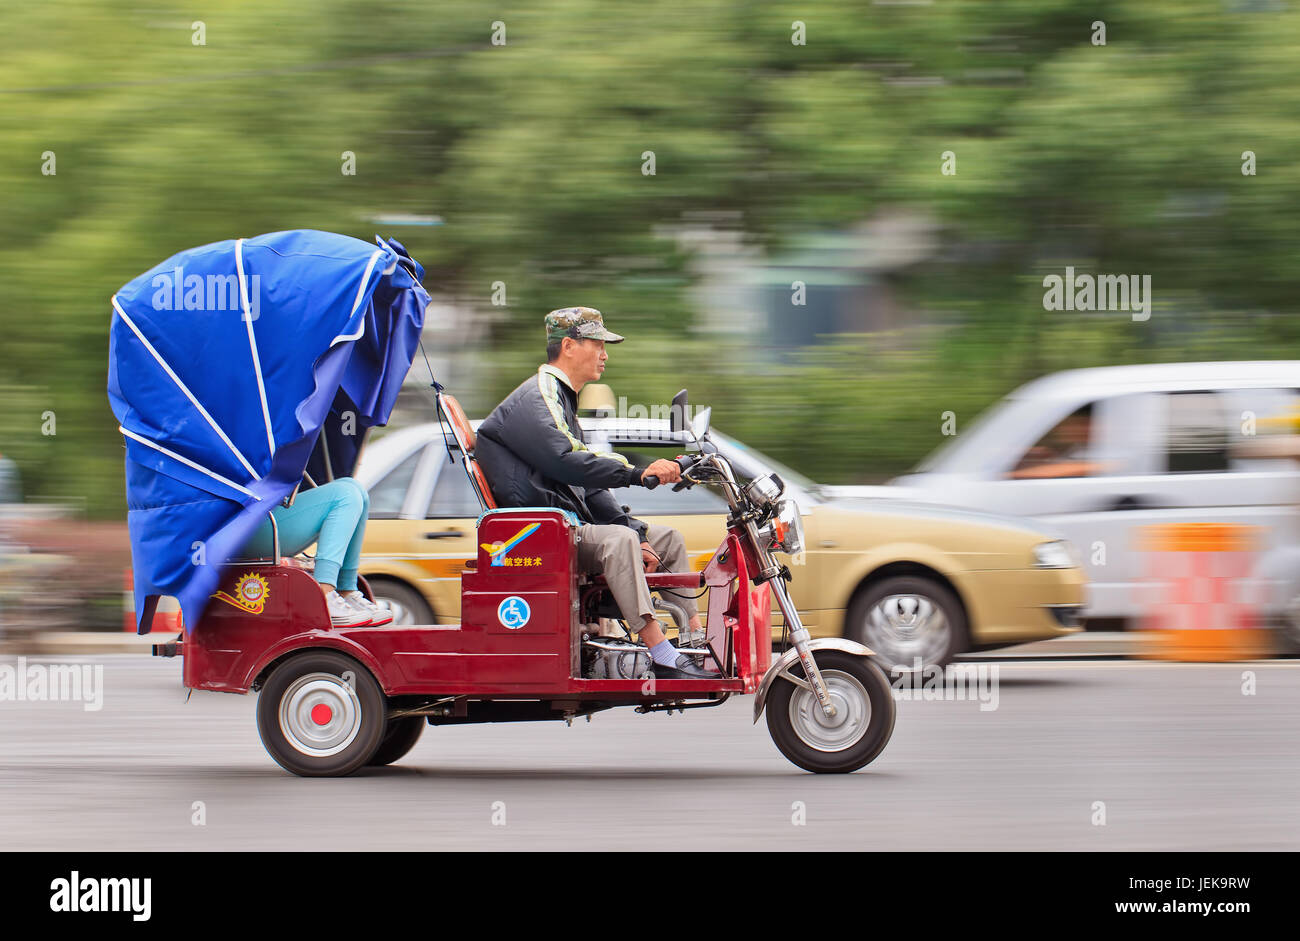 motor bike trike stockfotos motor bike trike bilder seite 2 alamy. Black Bedroom Furniture Sets. Home Design Ideas